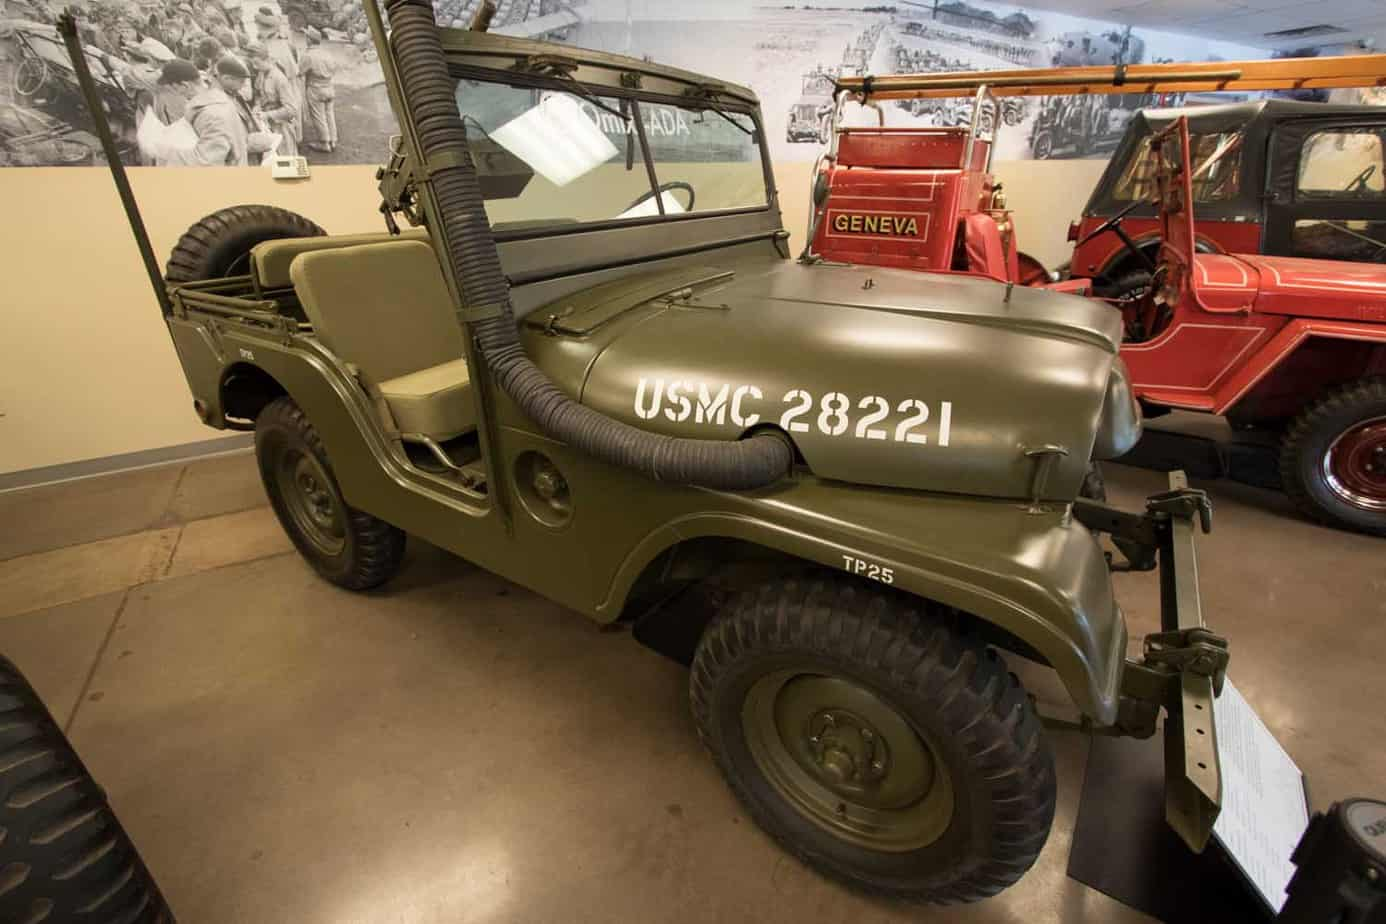 Vehicles Of The Jeep Heritage Museum Expedition Portal 1941 To 1952 Willys M38 A1 Was First Have Rounded Fenders And Hood It Designed For Military Use Served As Standard Light Personnel Transporter